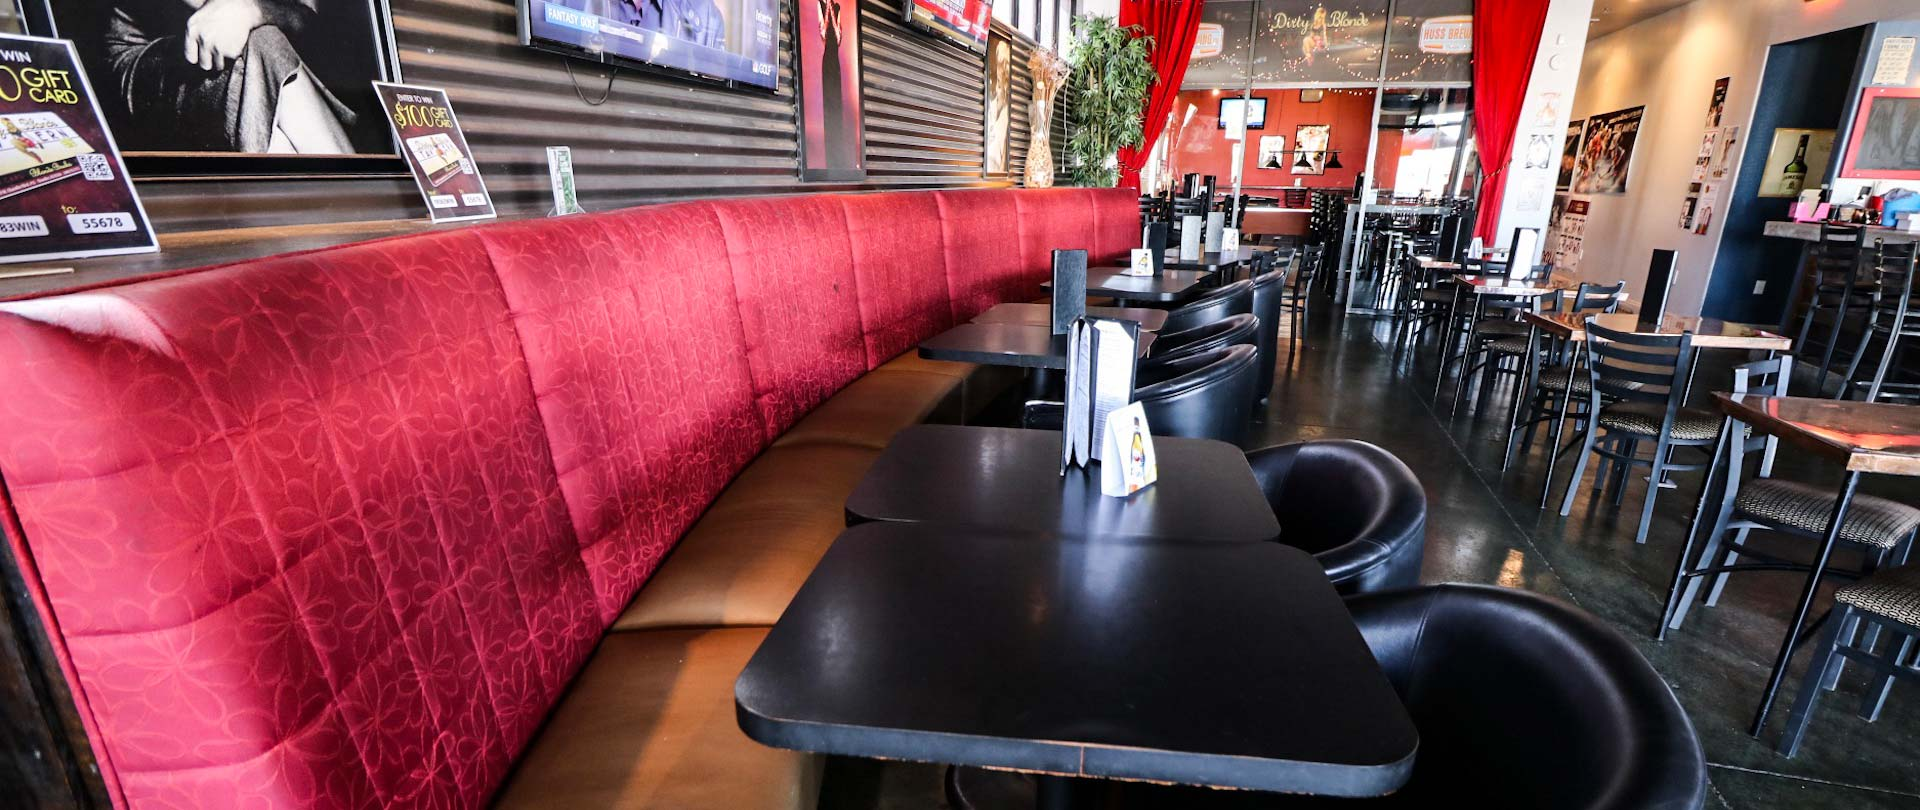 Long booth seating at Dirty Blonde Tavern